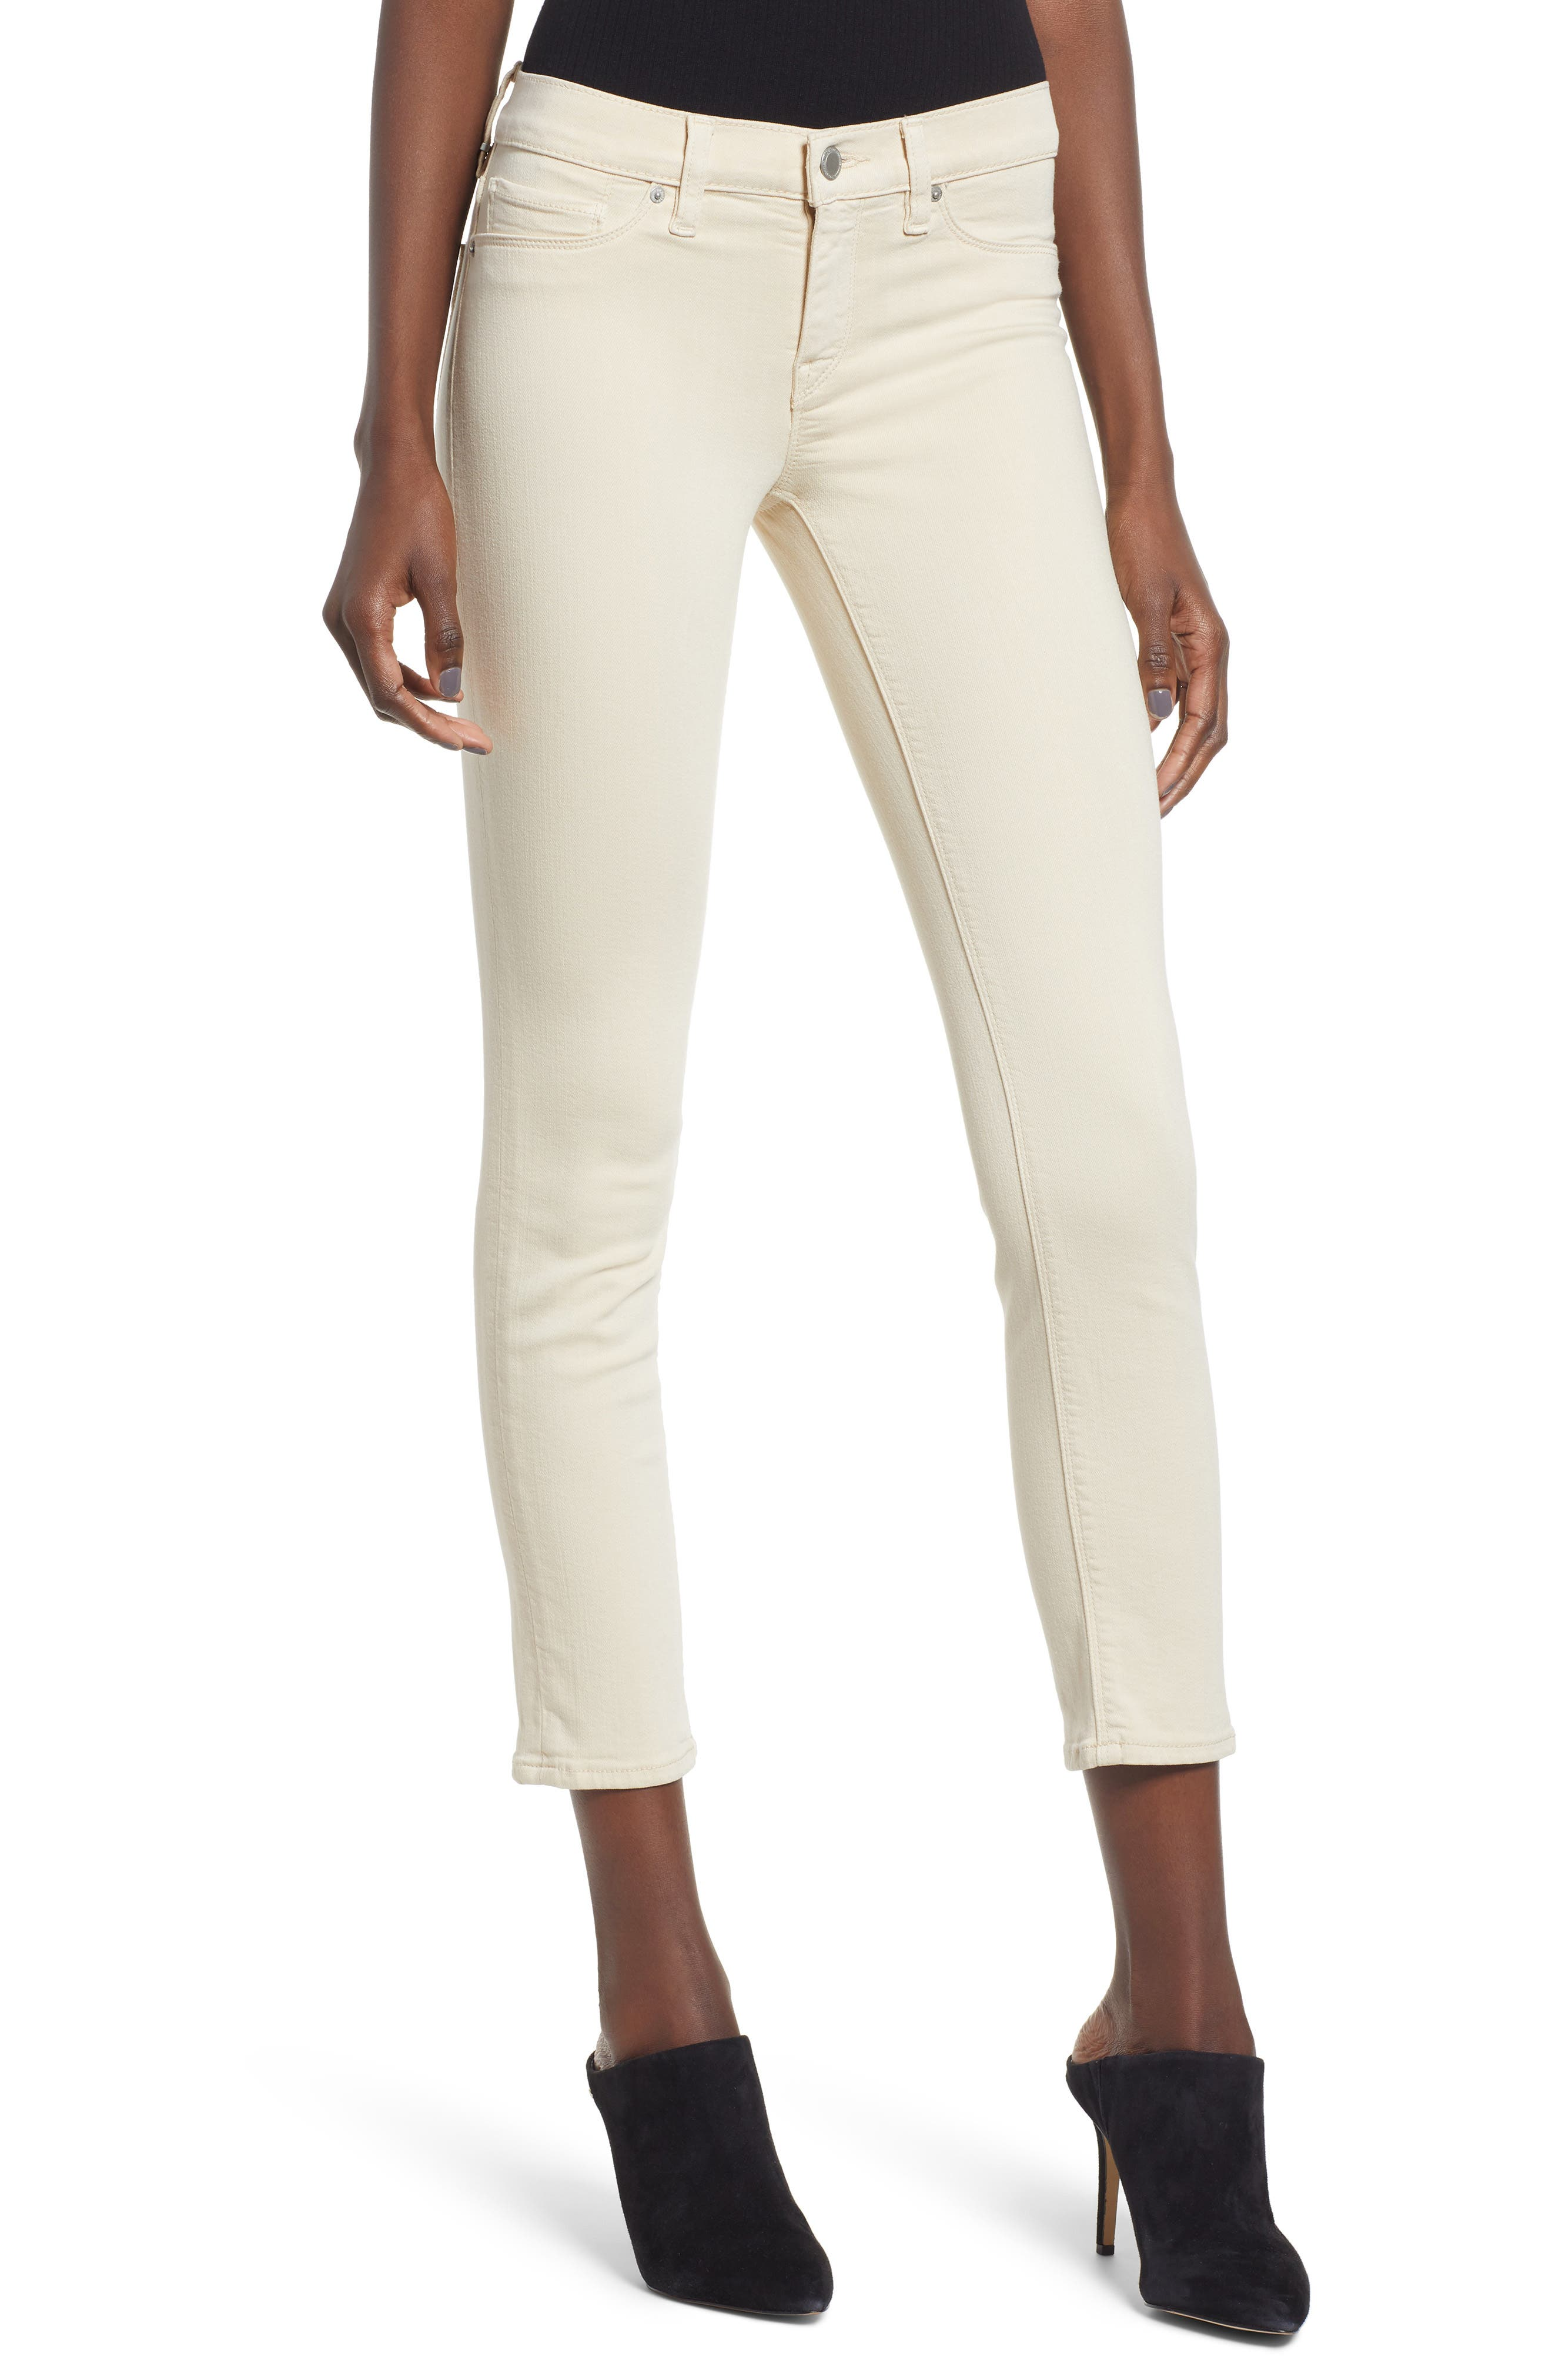 HUDSON JEANS Tally Ankle Skinny Jeans, Main, color, FAWN